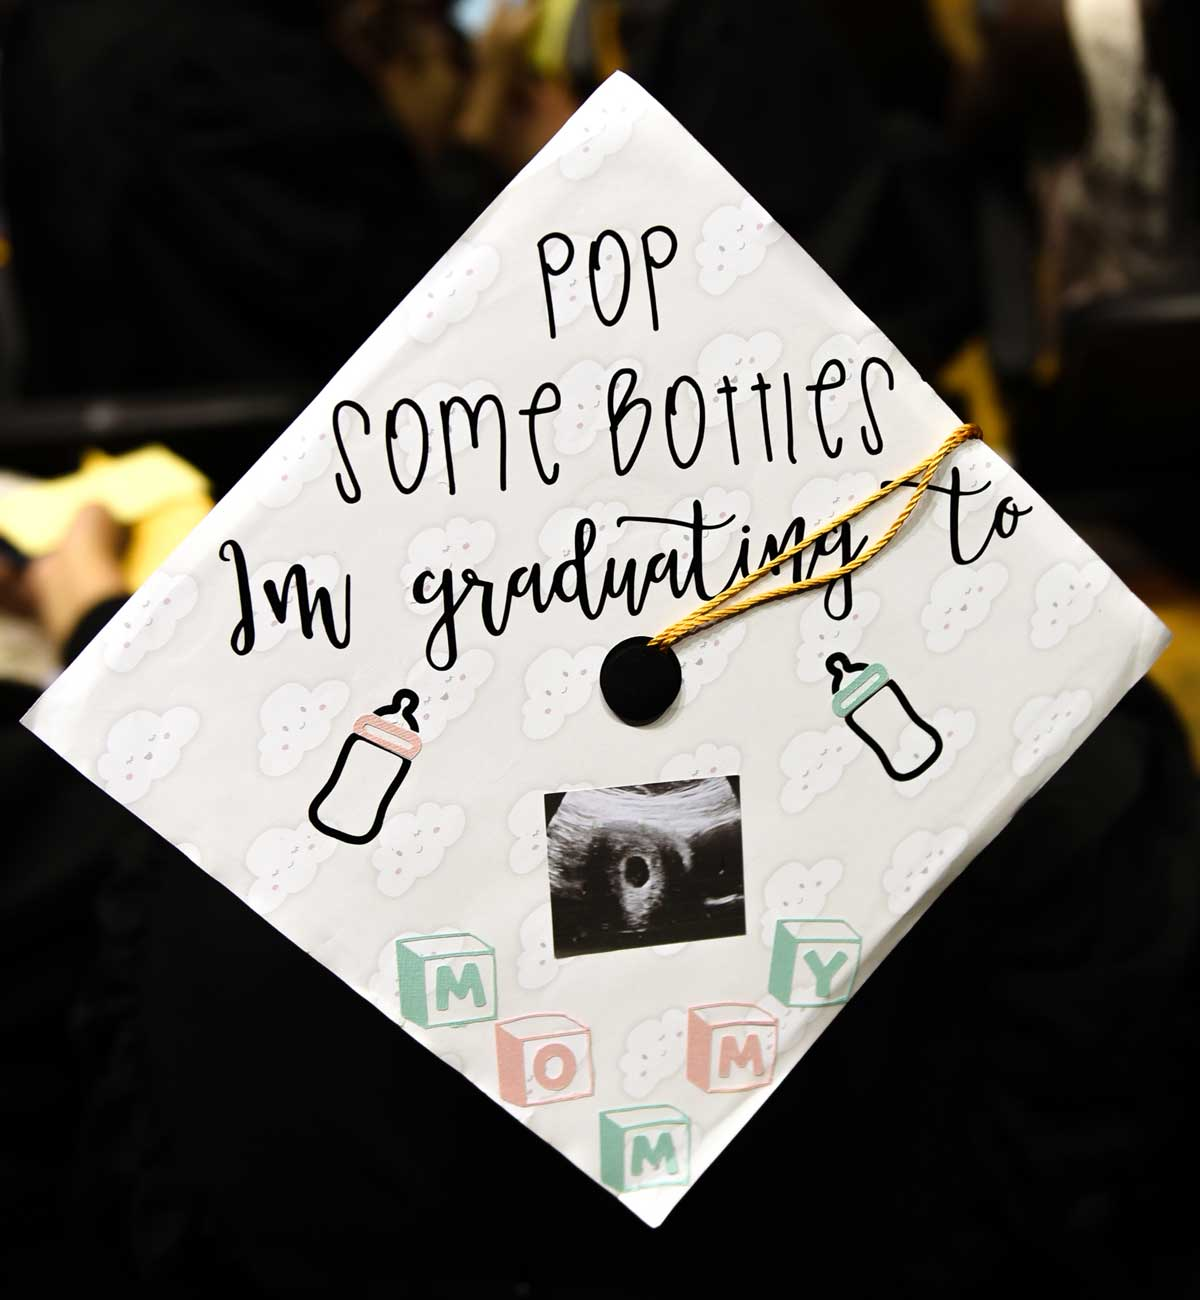 Grad cap decorated with text: Pop some bottles, I'm graduating to Mommy